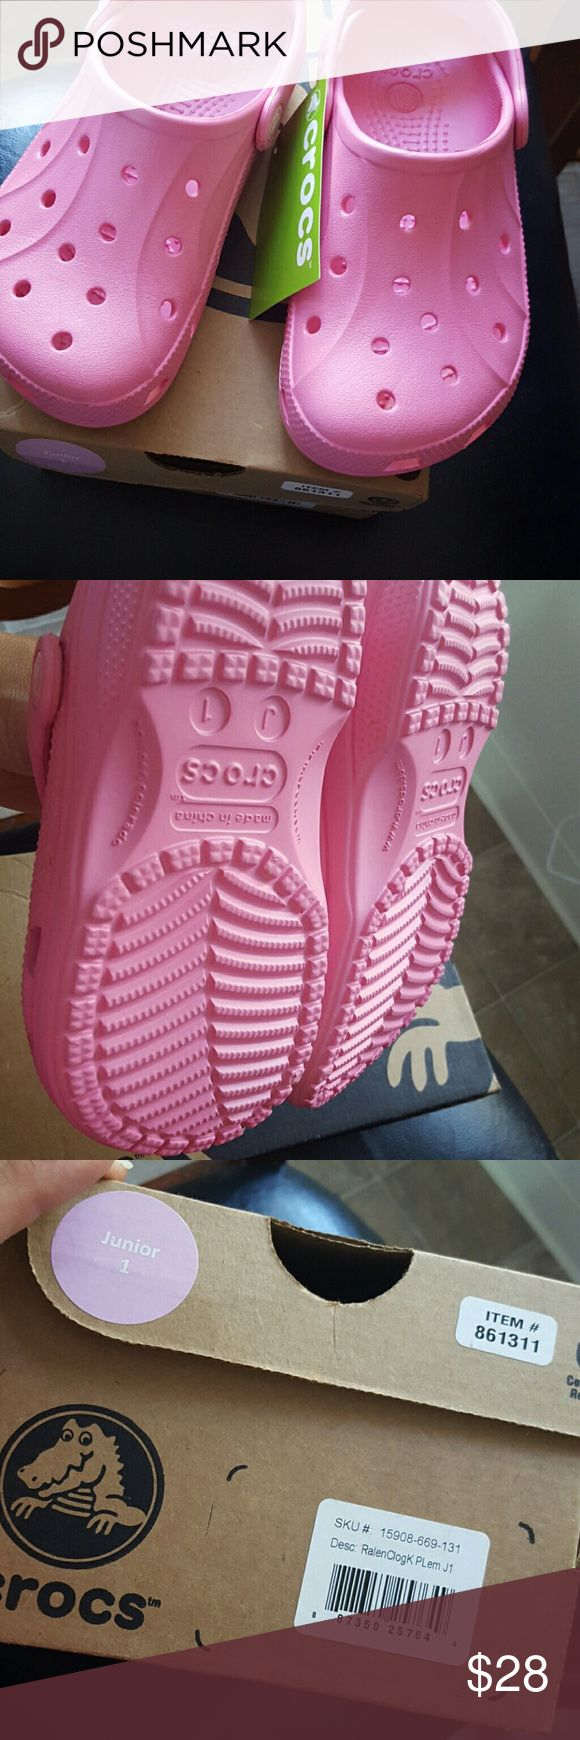 New Crocs kids clogs New with tag and box pink Crocs clogs size 1 CROCS Shoes Slippers